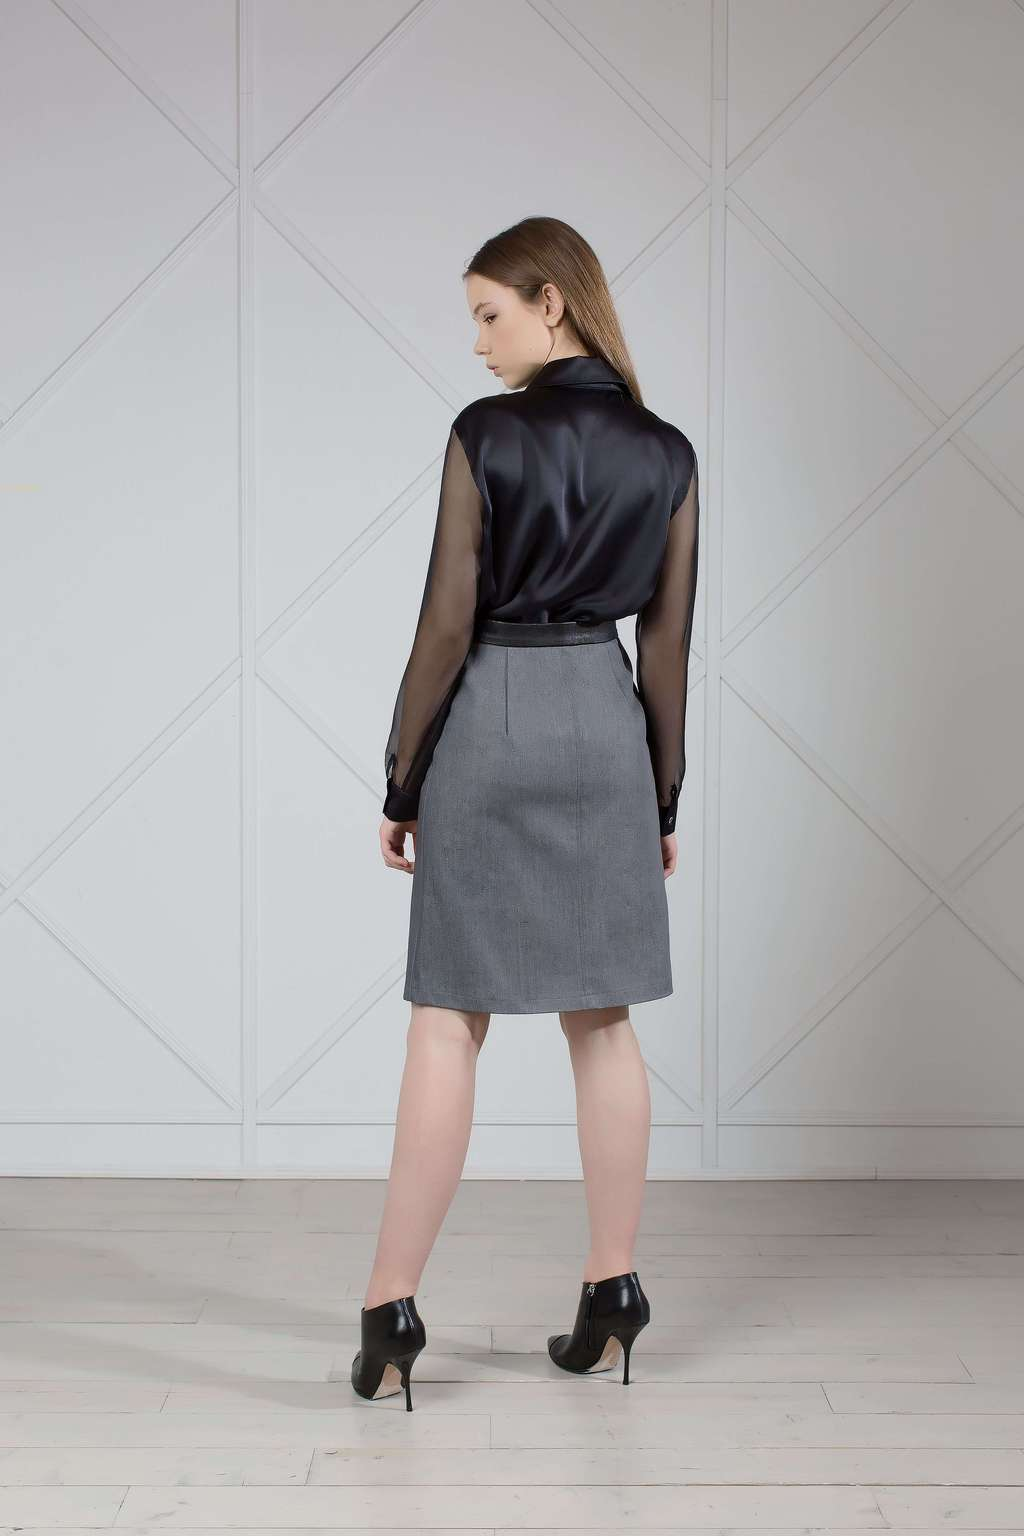 A-line skirt with leather